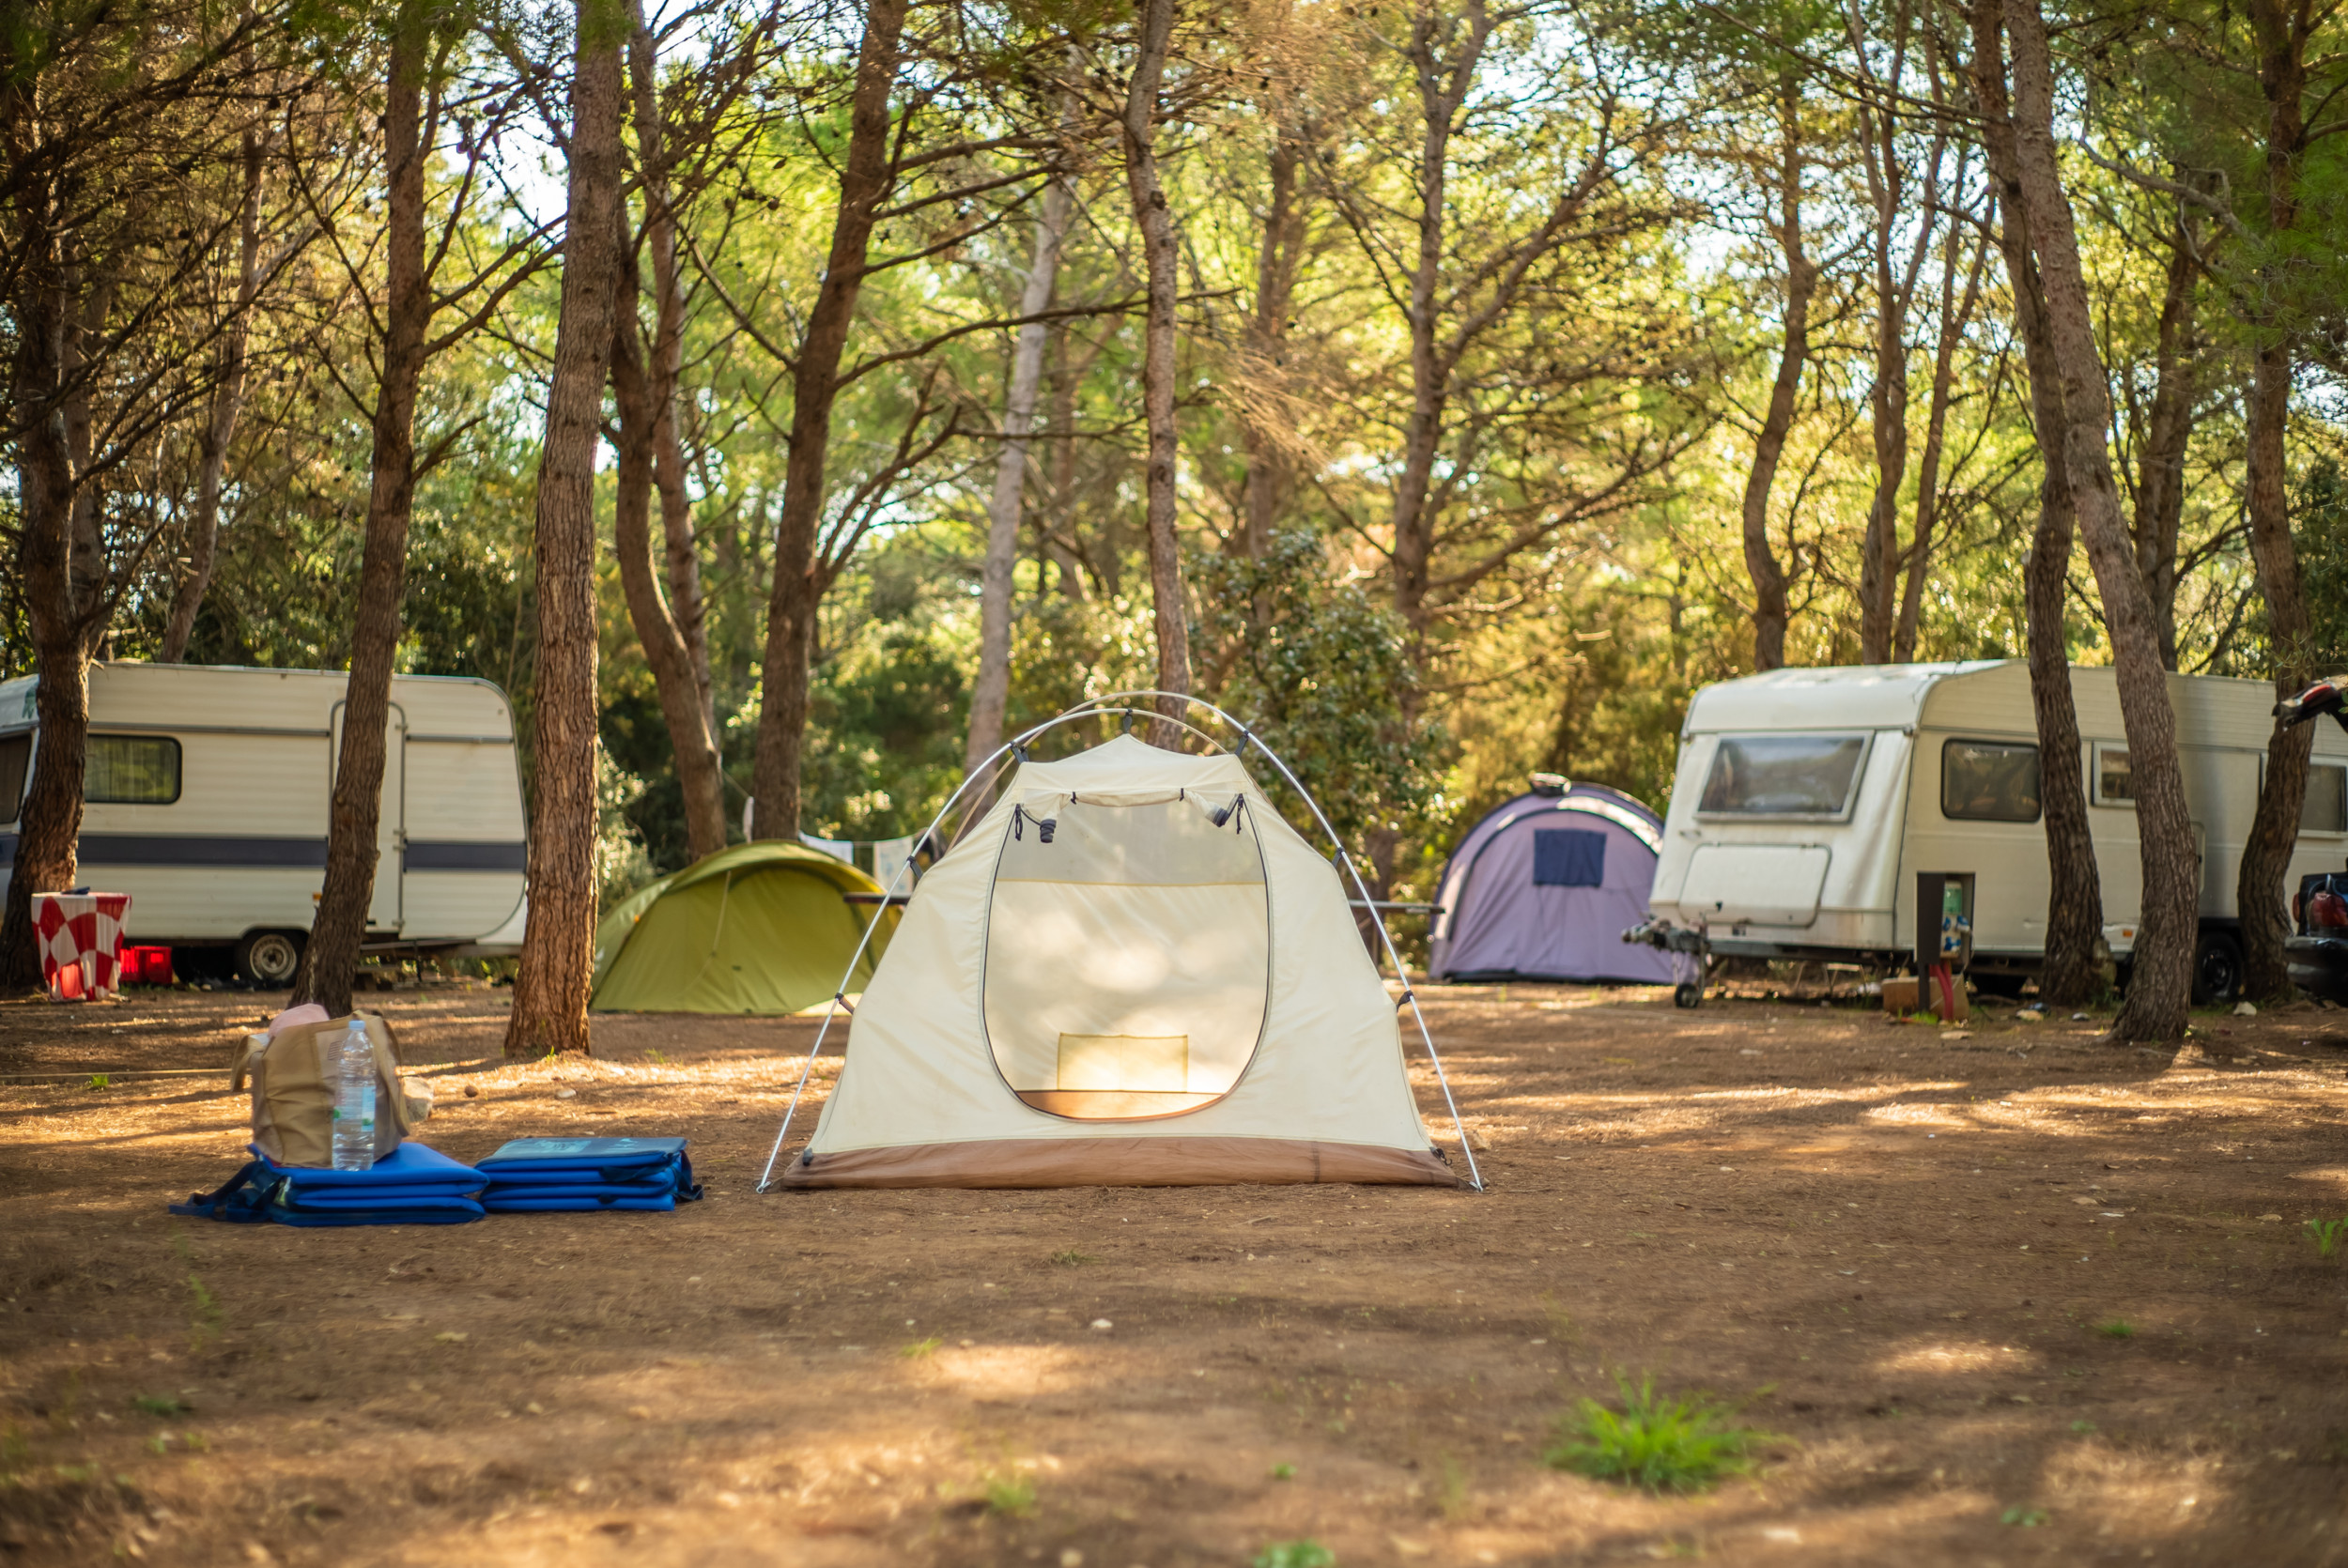 The Best Places to Camp This Summer Around the U.S.